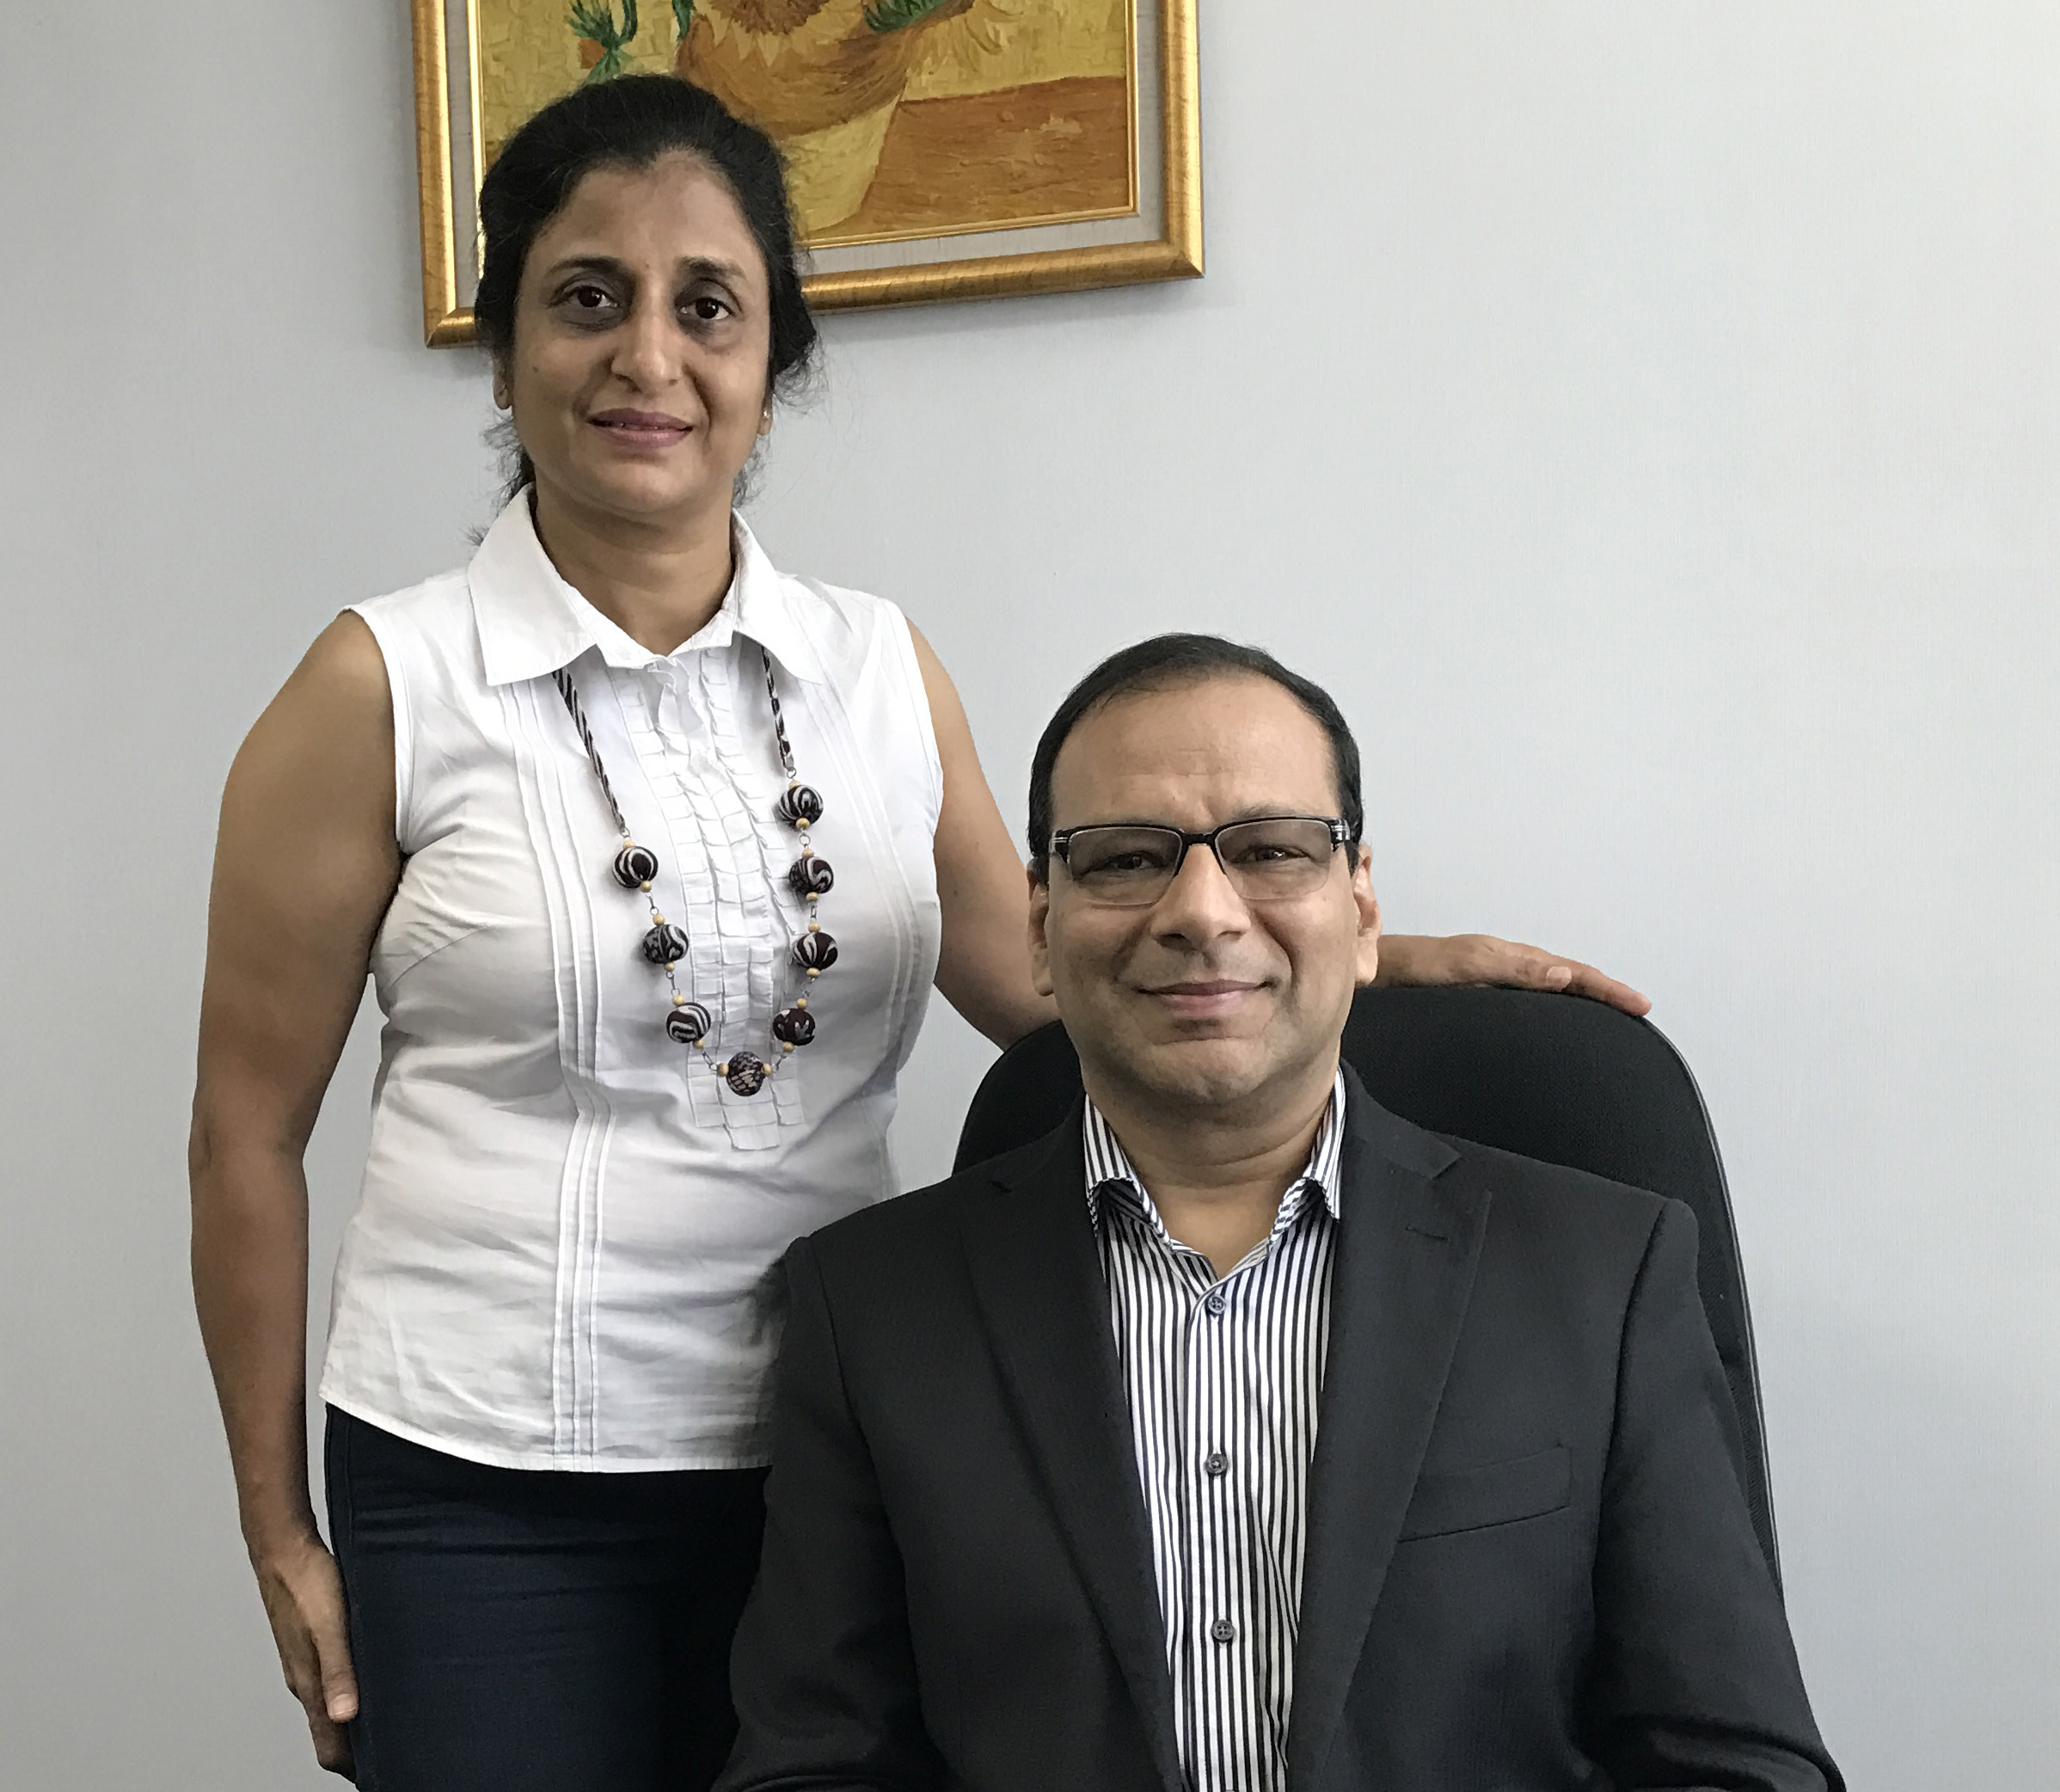 Founders Poonam Sagar and Rajat Sagar